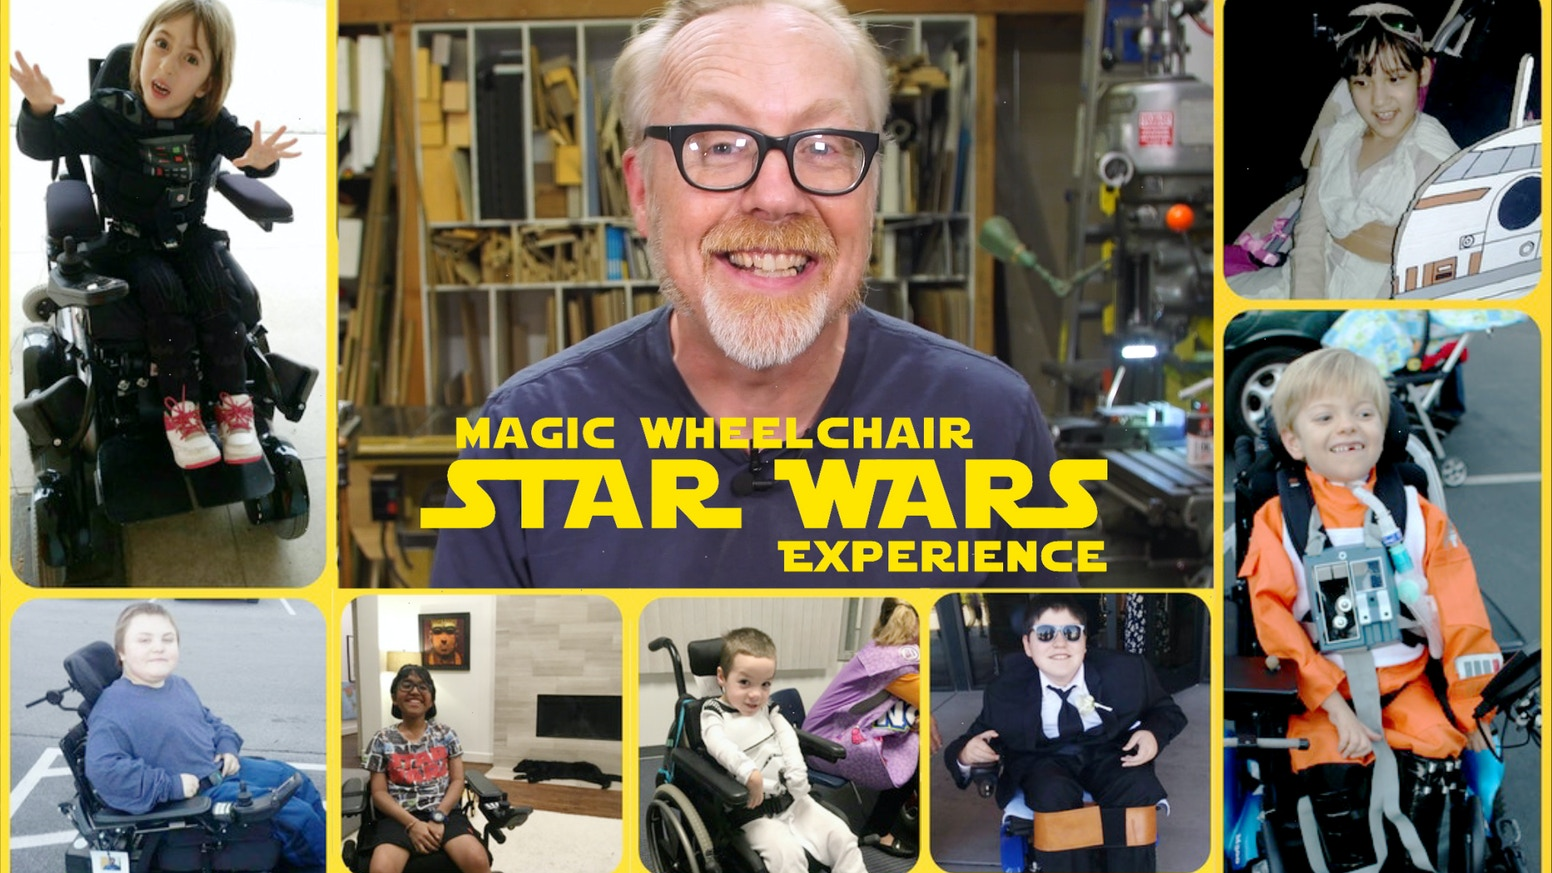 Magic Wheelchair's Epic Star Wars Fan Experience is the top crowdfunding project launched today. Magic Wheelchair's Epic Star Wars Fan Experience raised over $25009 from 515 backers. Other top projects include Multiplex 10: The Web Series, Thumpasaurus // The Book of Thump, Sort Coins, Cash and Card in A Snap! PLEI Smart Quickstarter...